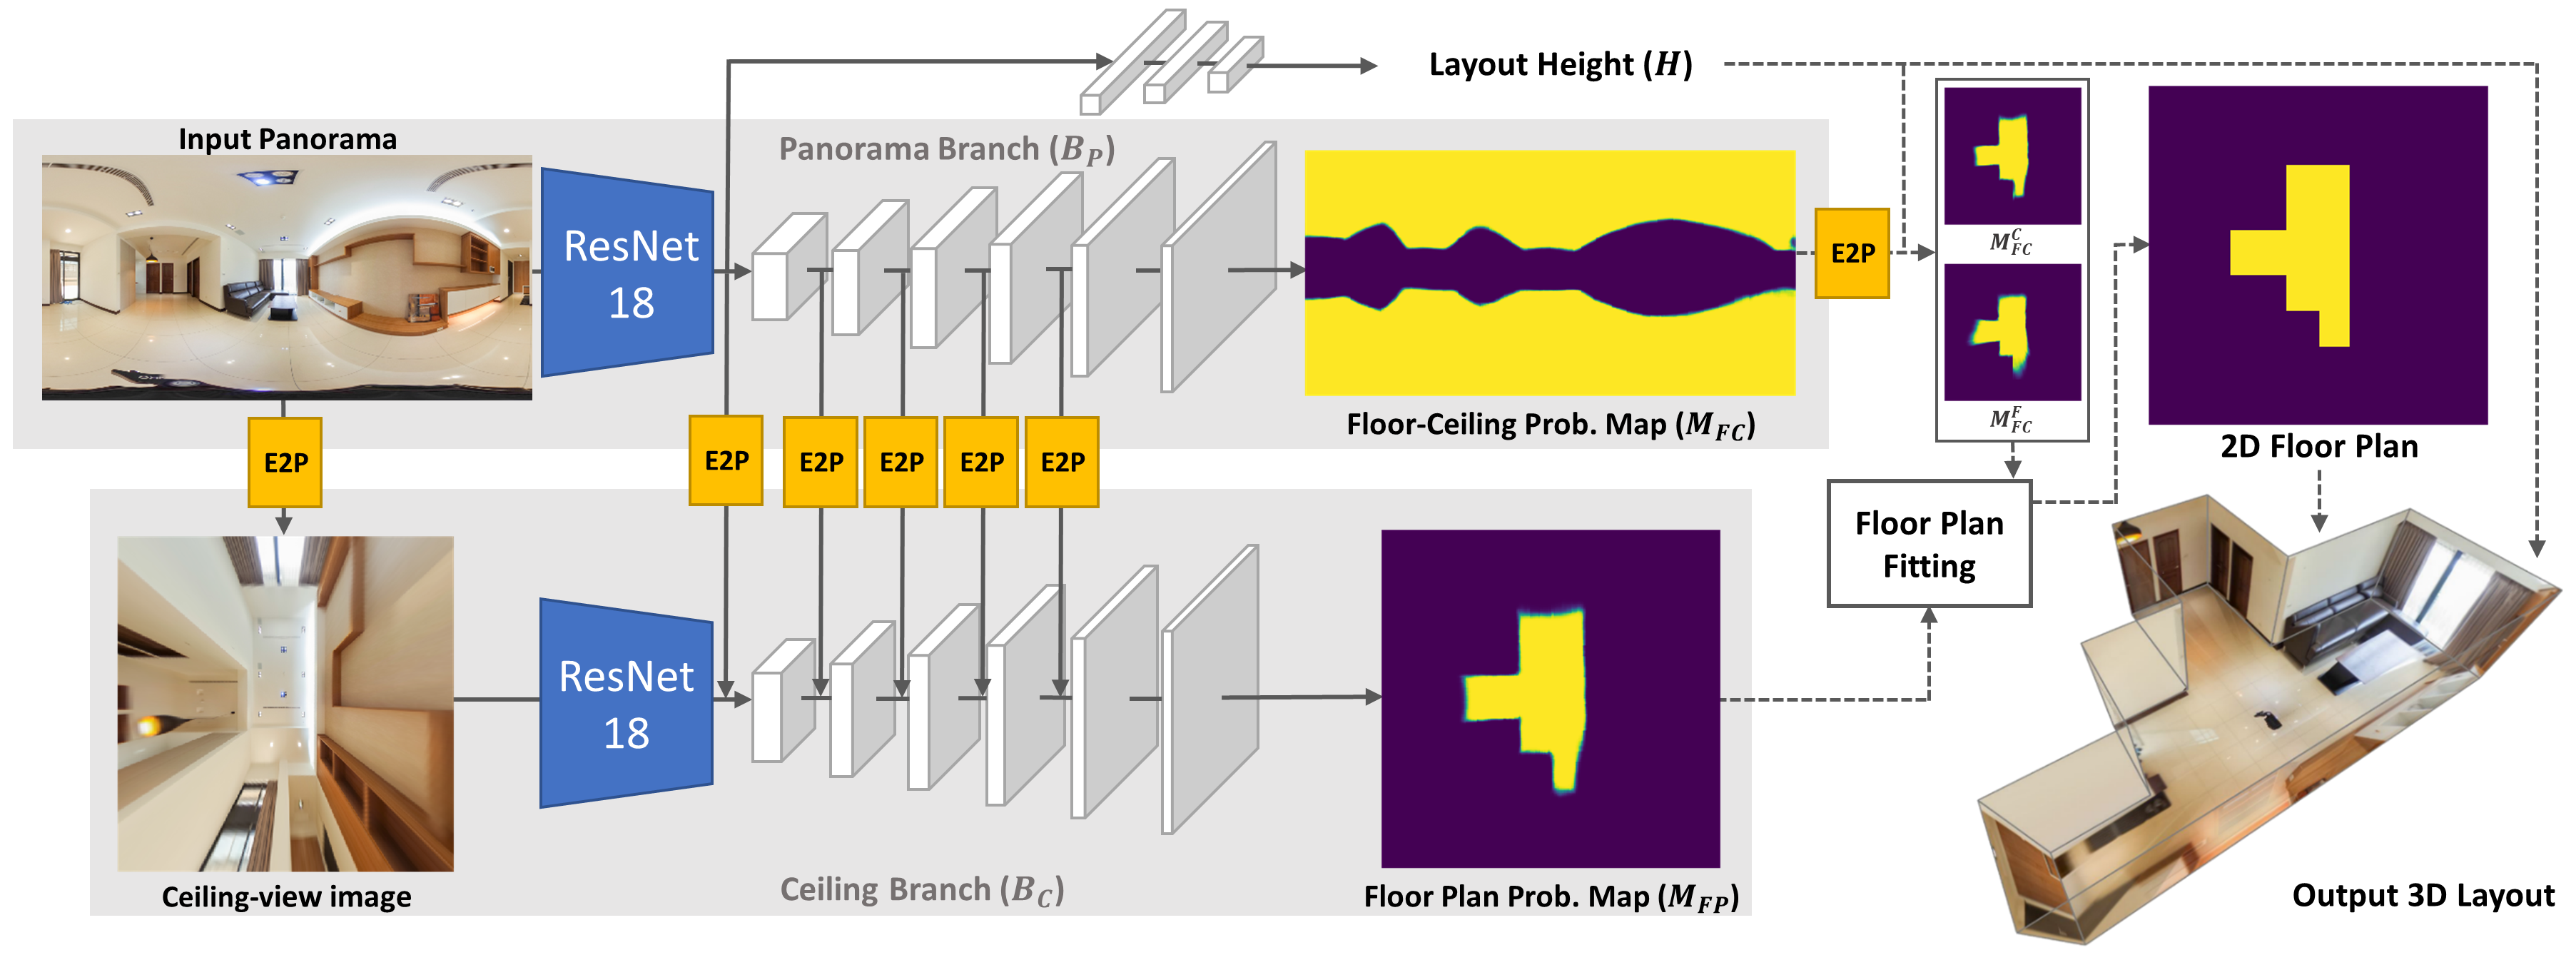 DuLa-Net: A Dual-Projection Network for Estimating Room